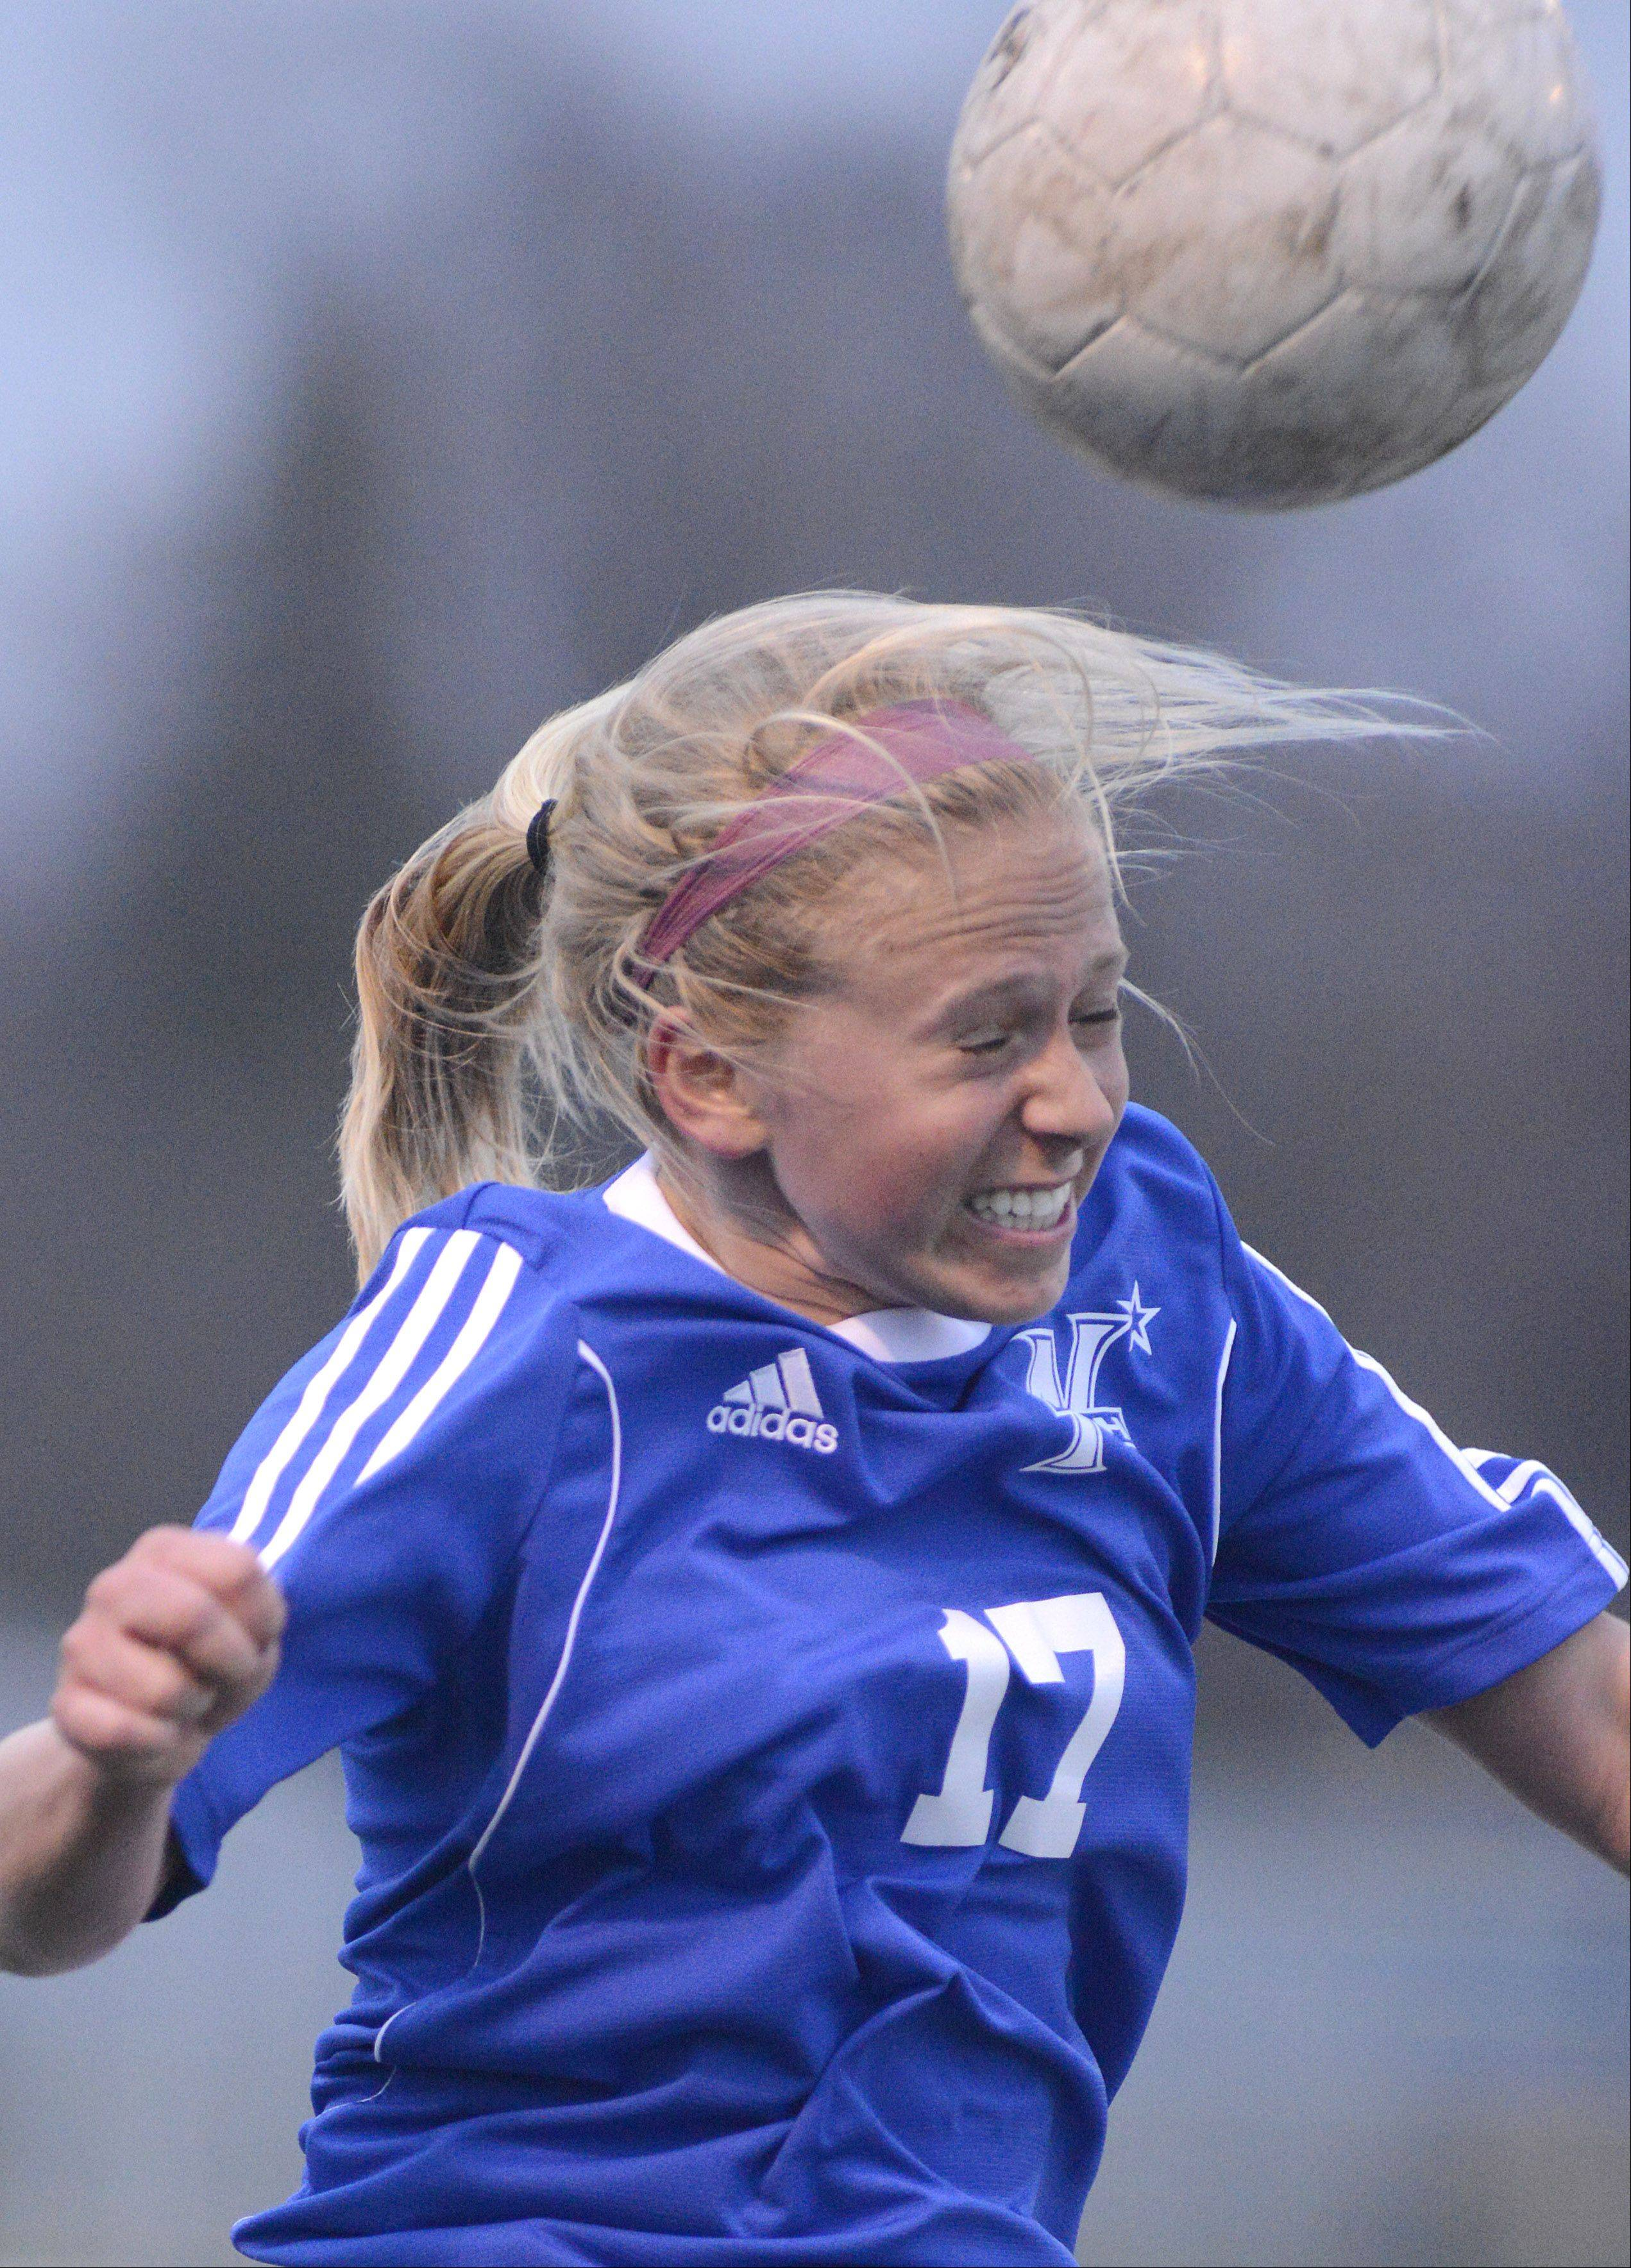 St. Charles North's Kelly Manski heads the ball in the first half on Tuesday, April 9.